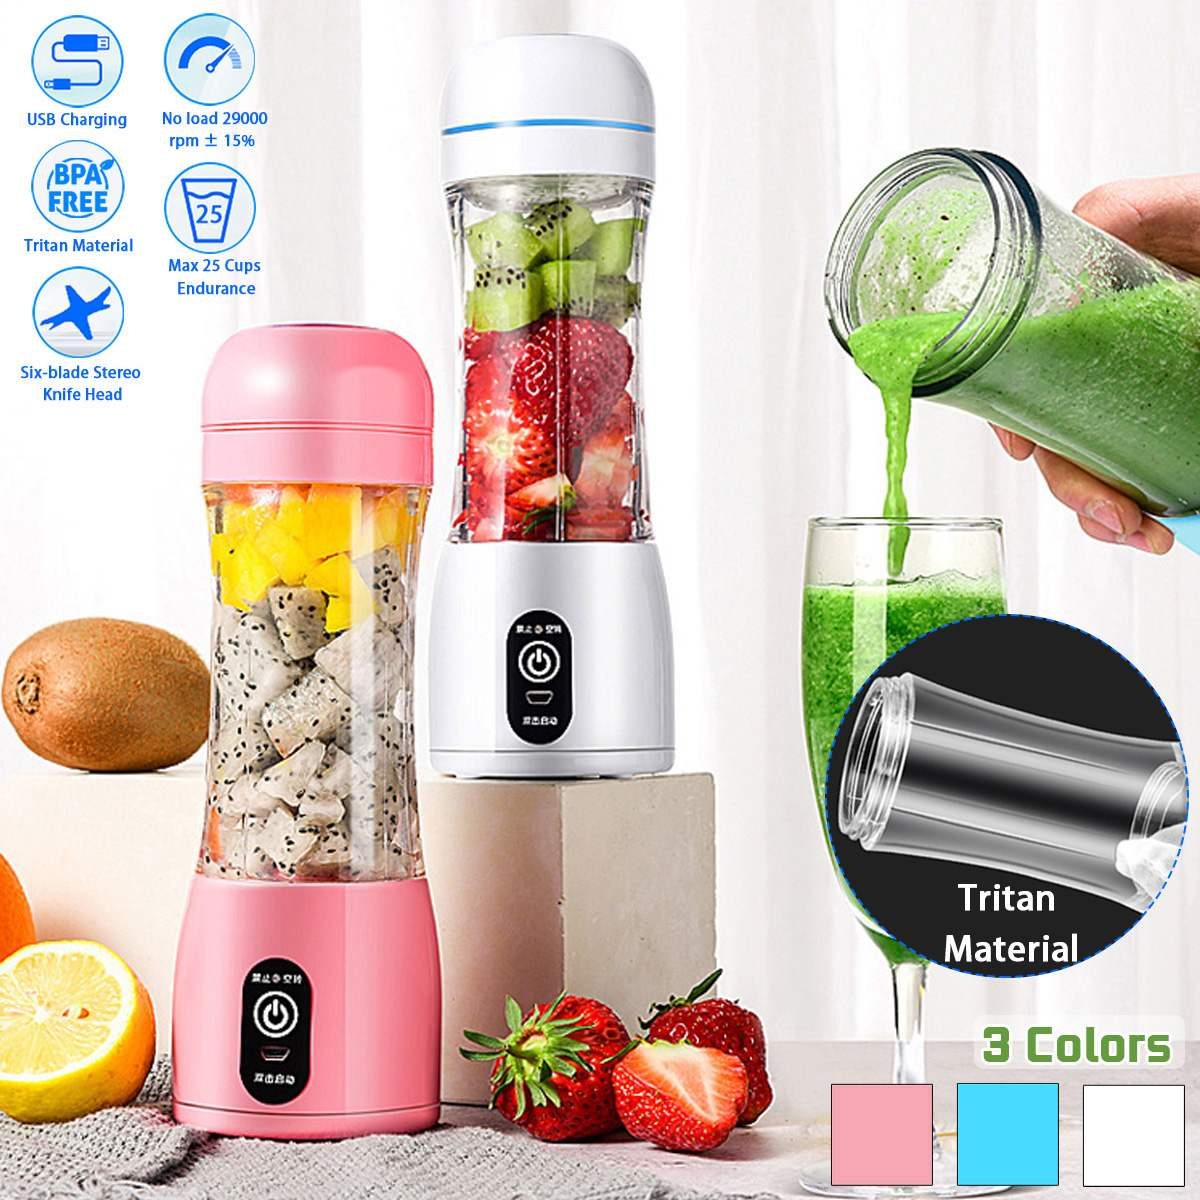 Portable USB Rechargeable Electric Fruit Juicer  Smoothie Juicer Maker Bottle Cup 380ML Six Leaf Cutter Handheld Juicer Machine